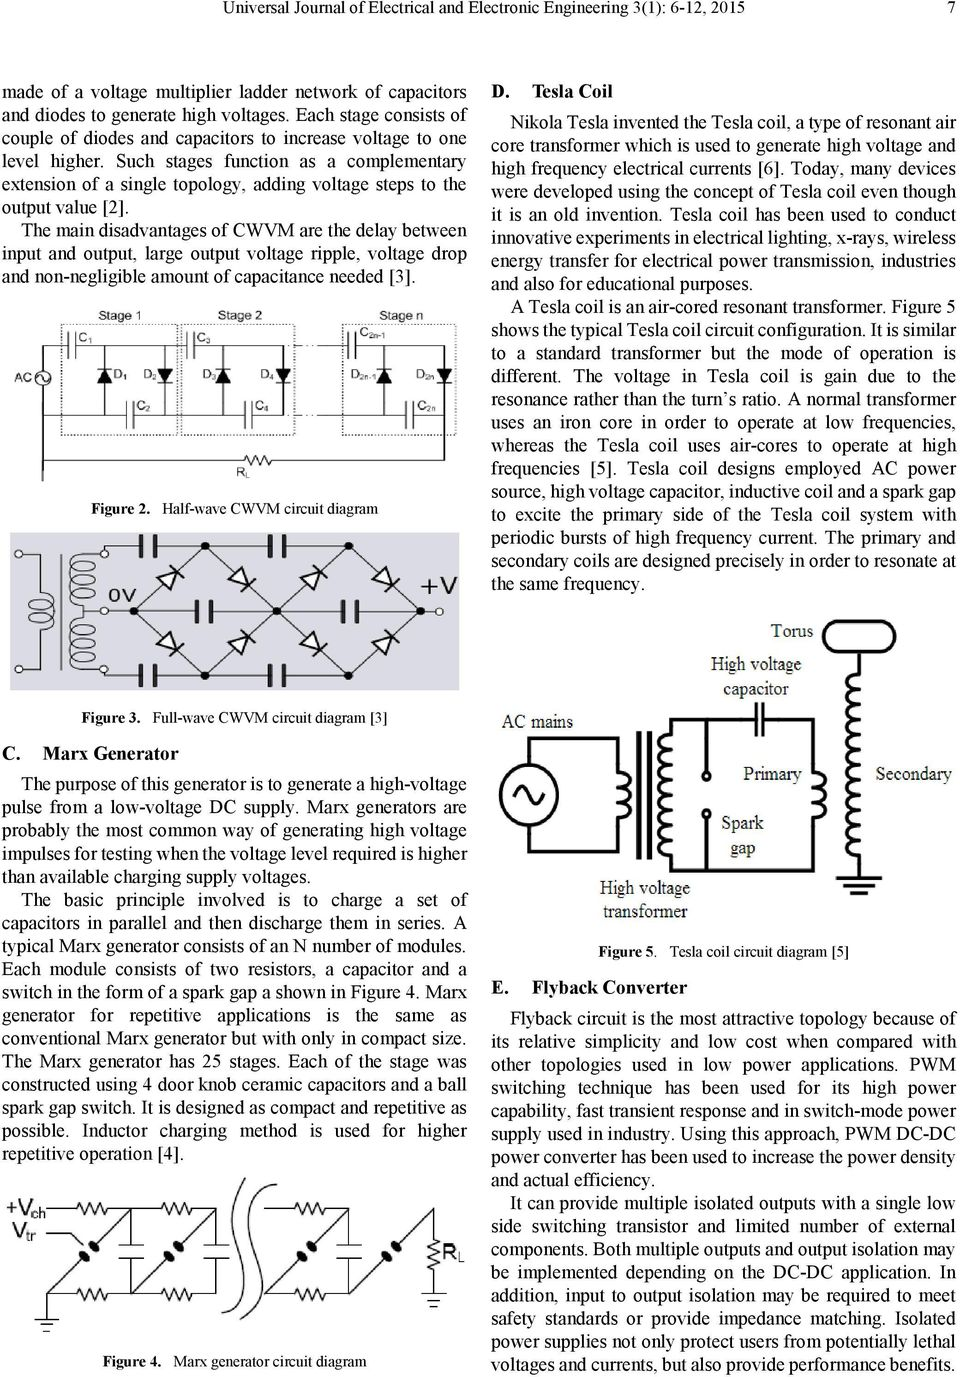 Design Of High Voltage Low Power Supply Device Pdf Circuit Moreover Dc Furthermore Such Stages Function As A Complementary Extension Single Topology Adding Steps To